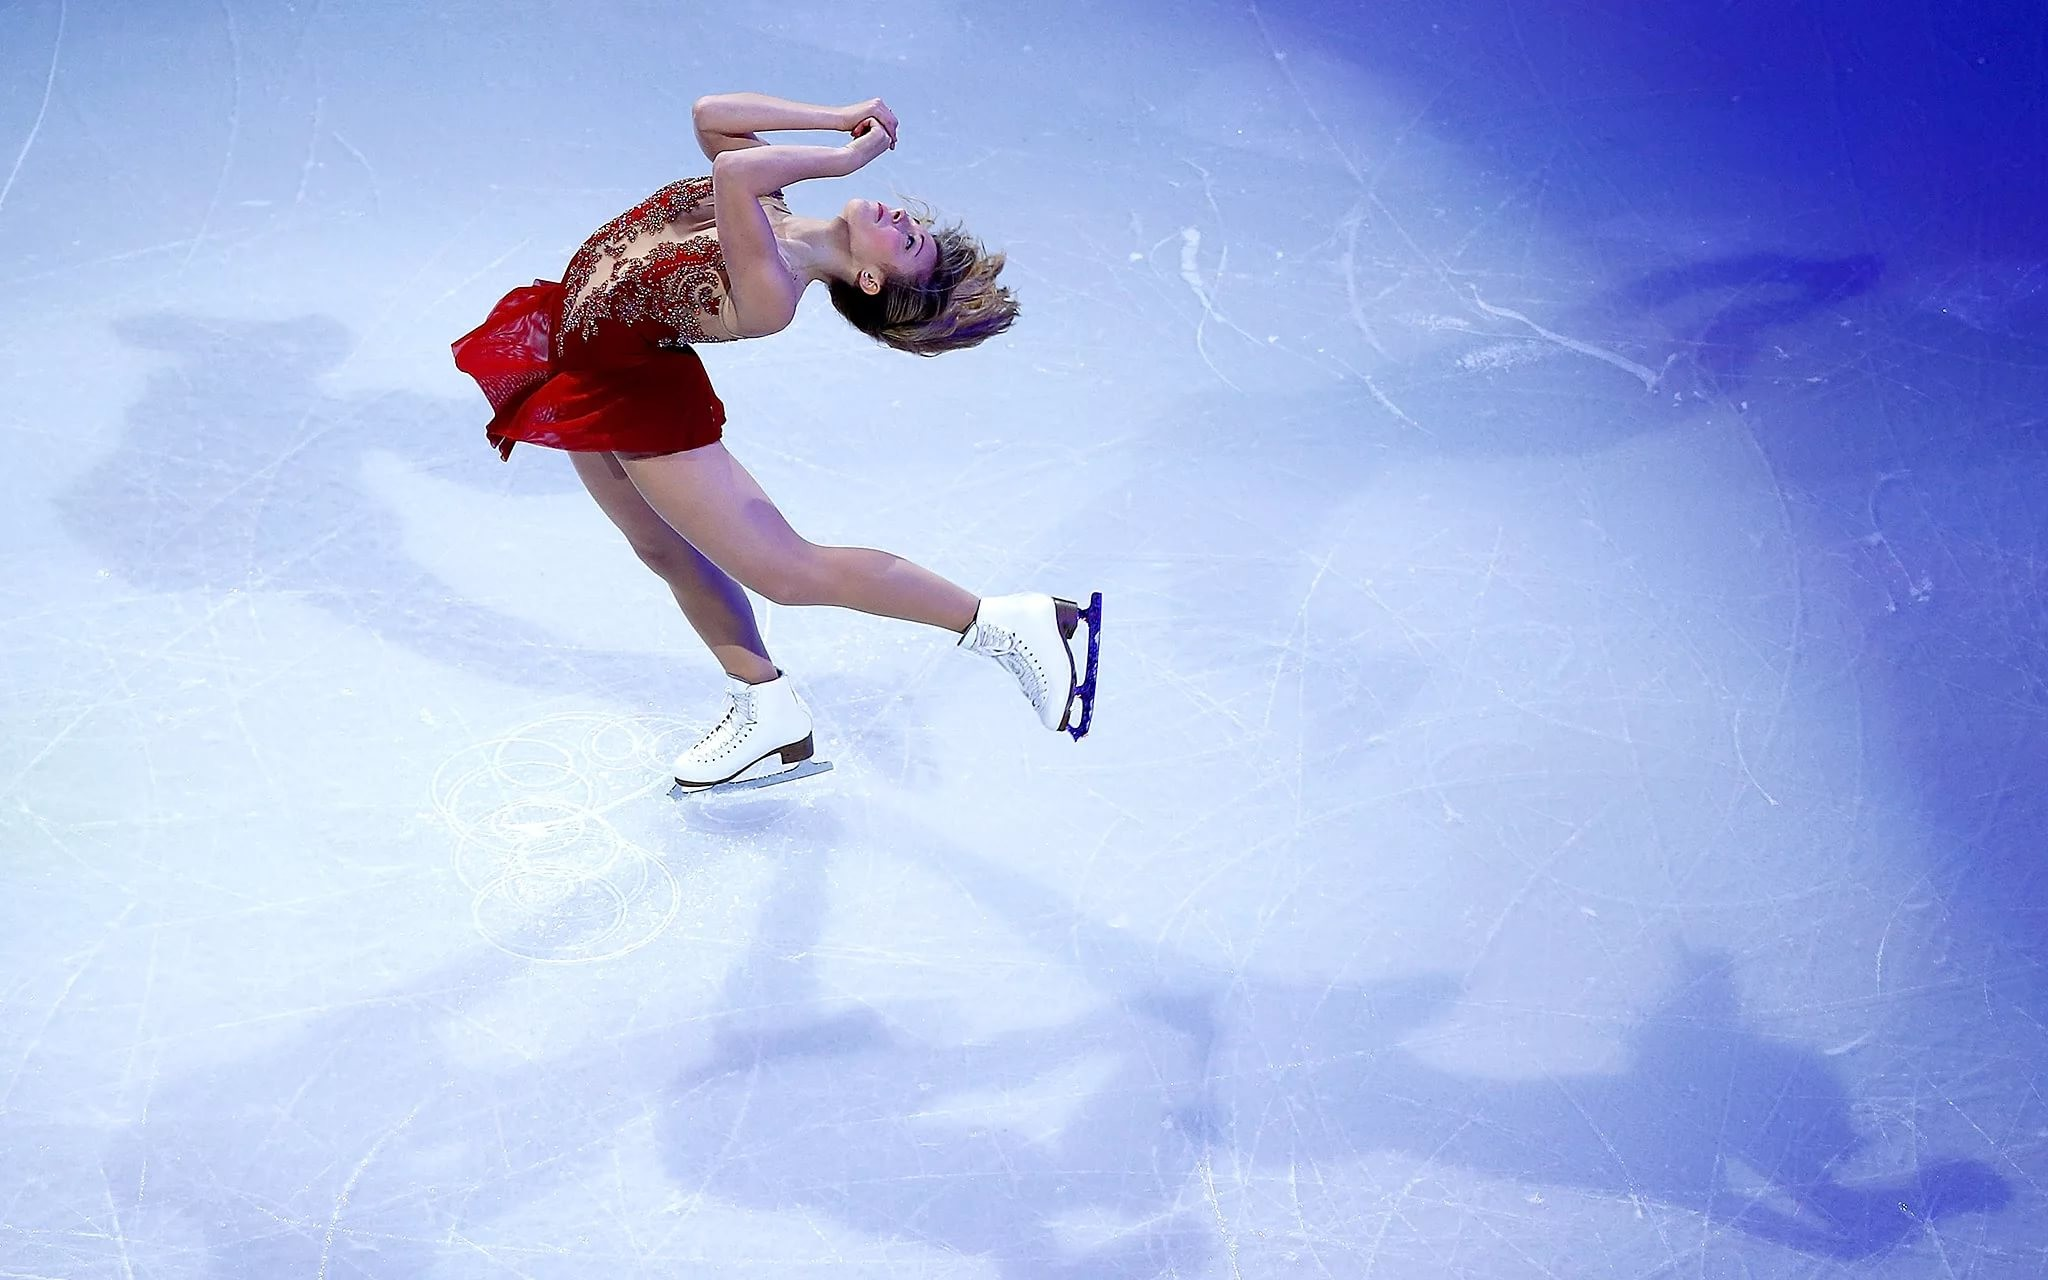 Res: 2048x1280, ... Figure Skating 1080p wallpapers ...